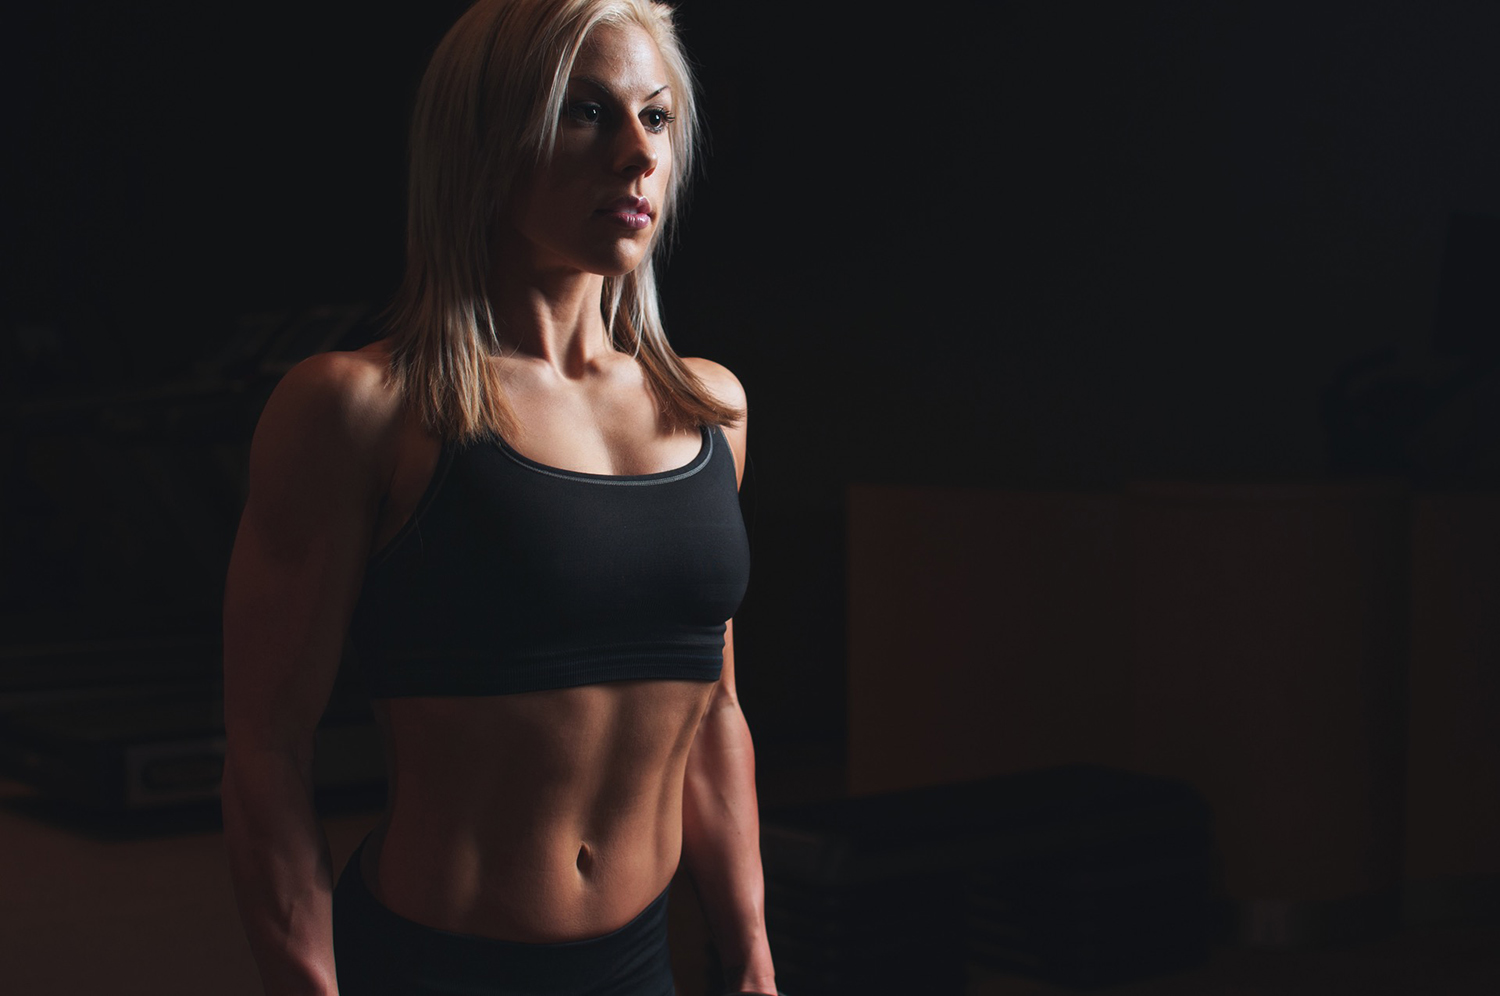 Muscular Woman With Abs